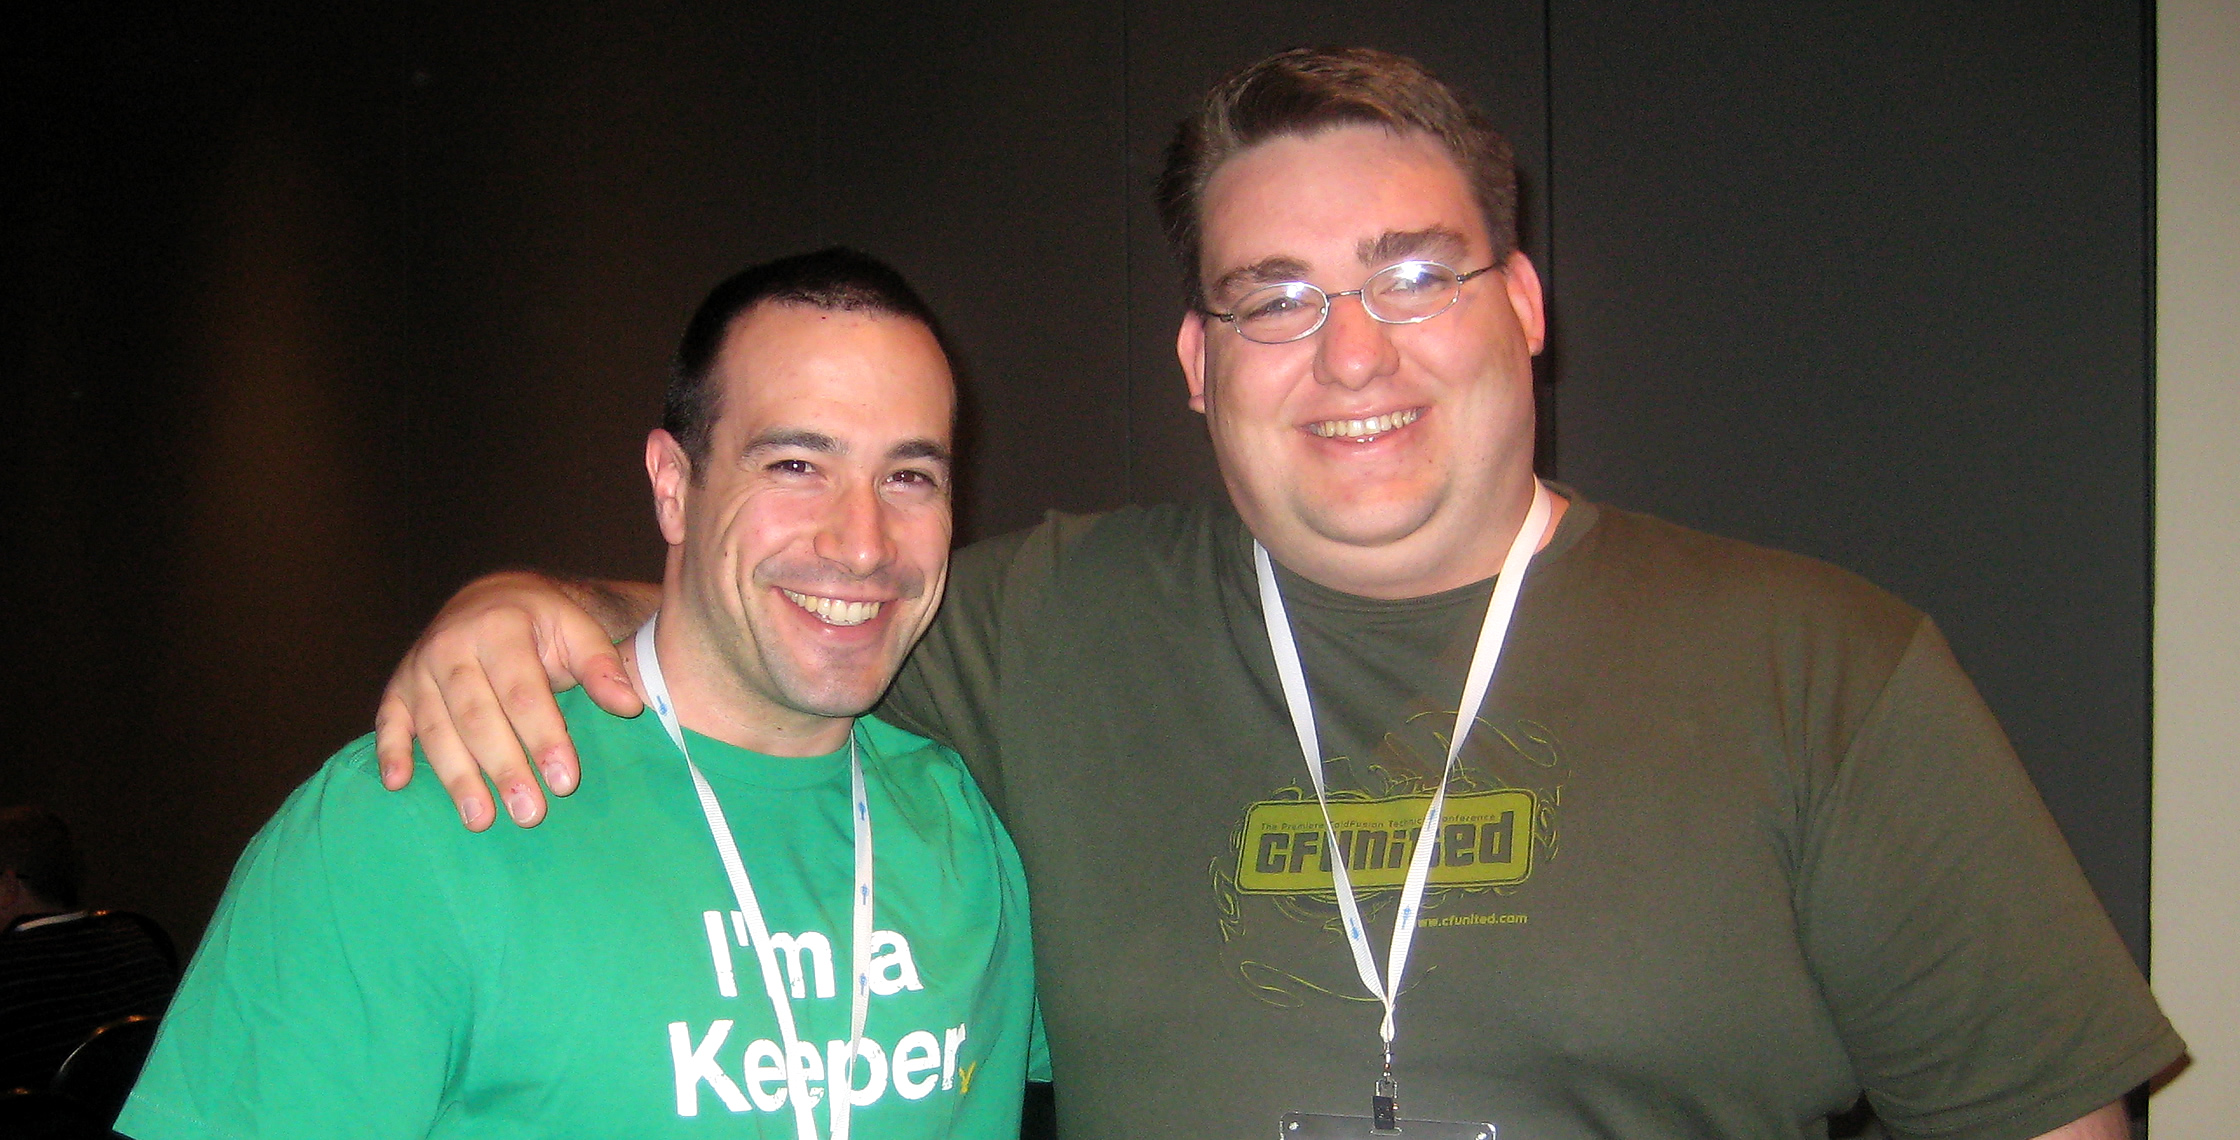 Ben Nadel at CFUNITED 2008 (Washington, D.C.) with: Ken Auenson